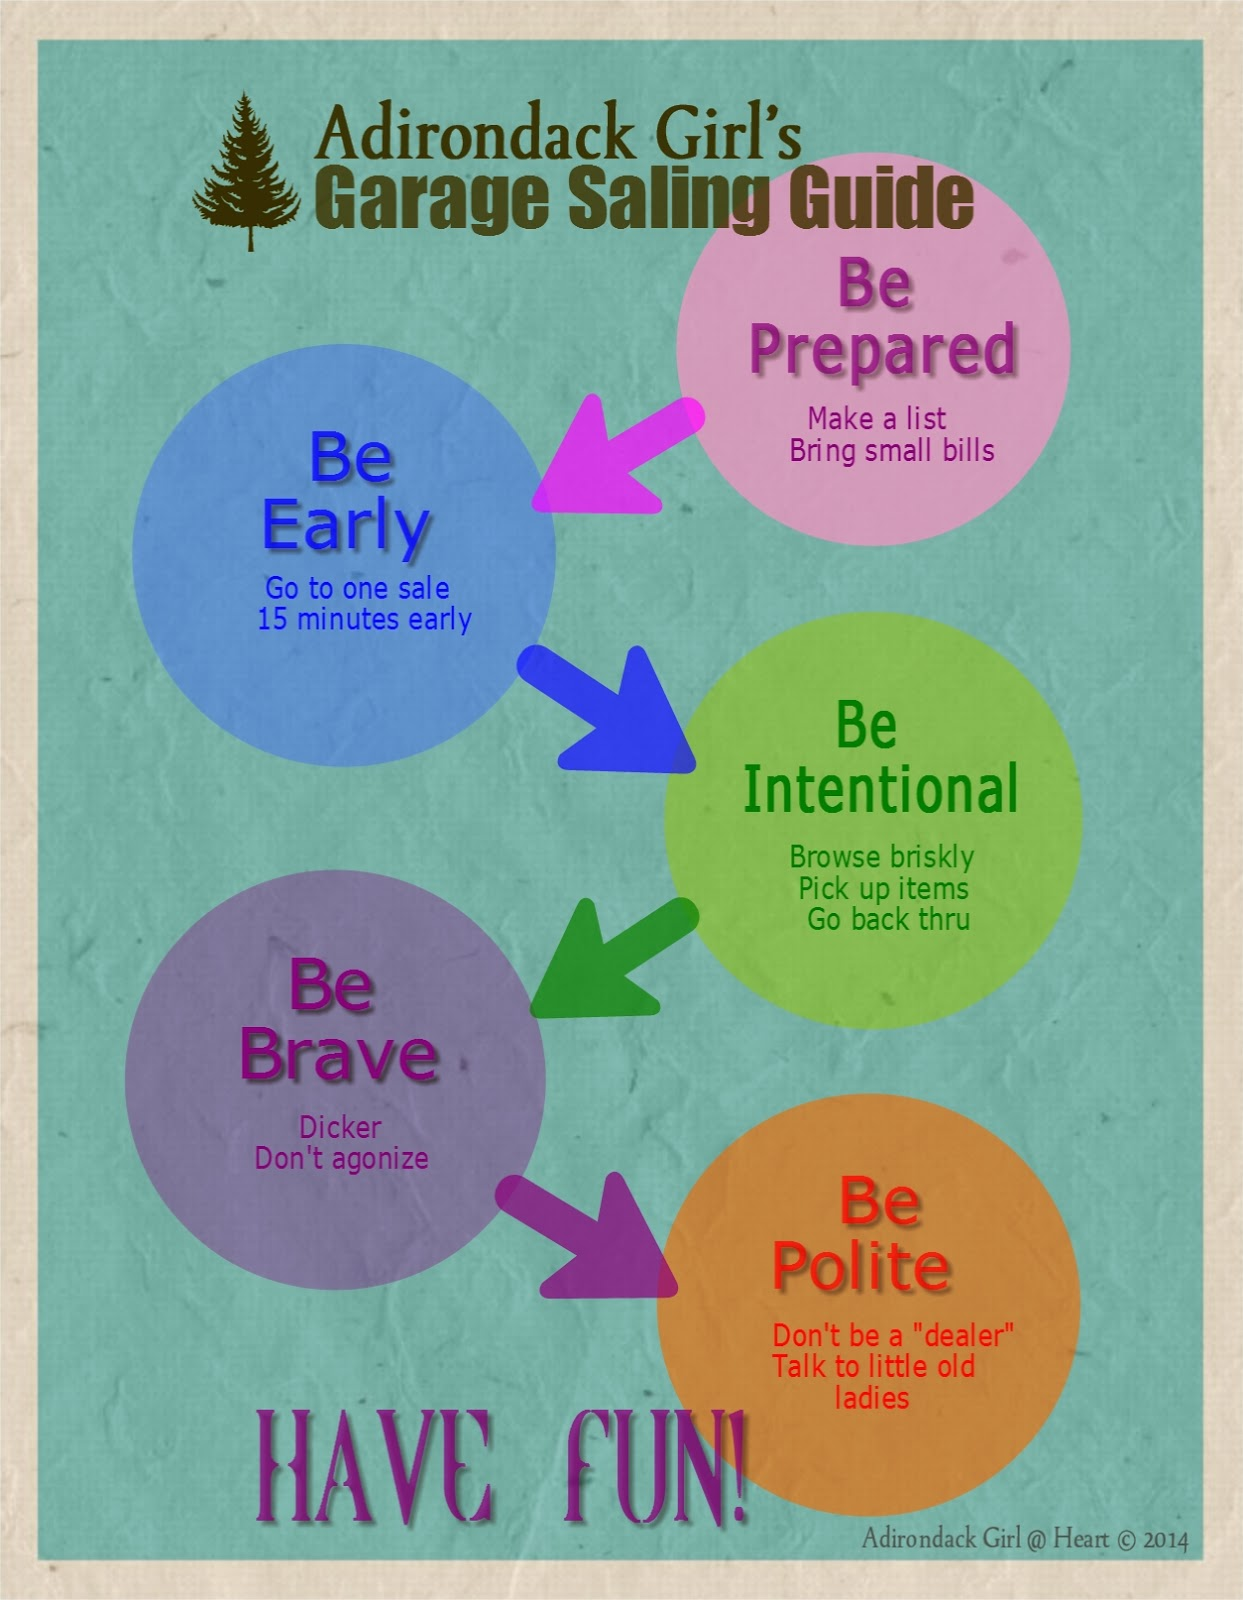 Adirondack Girl's Garage Saling Guide